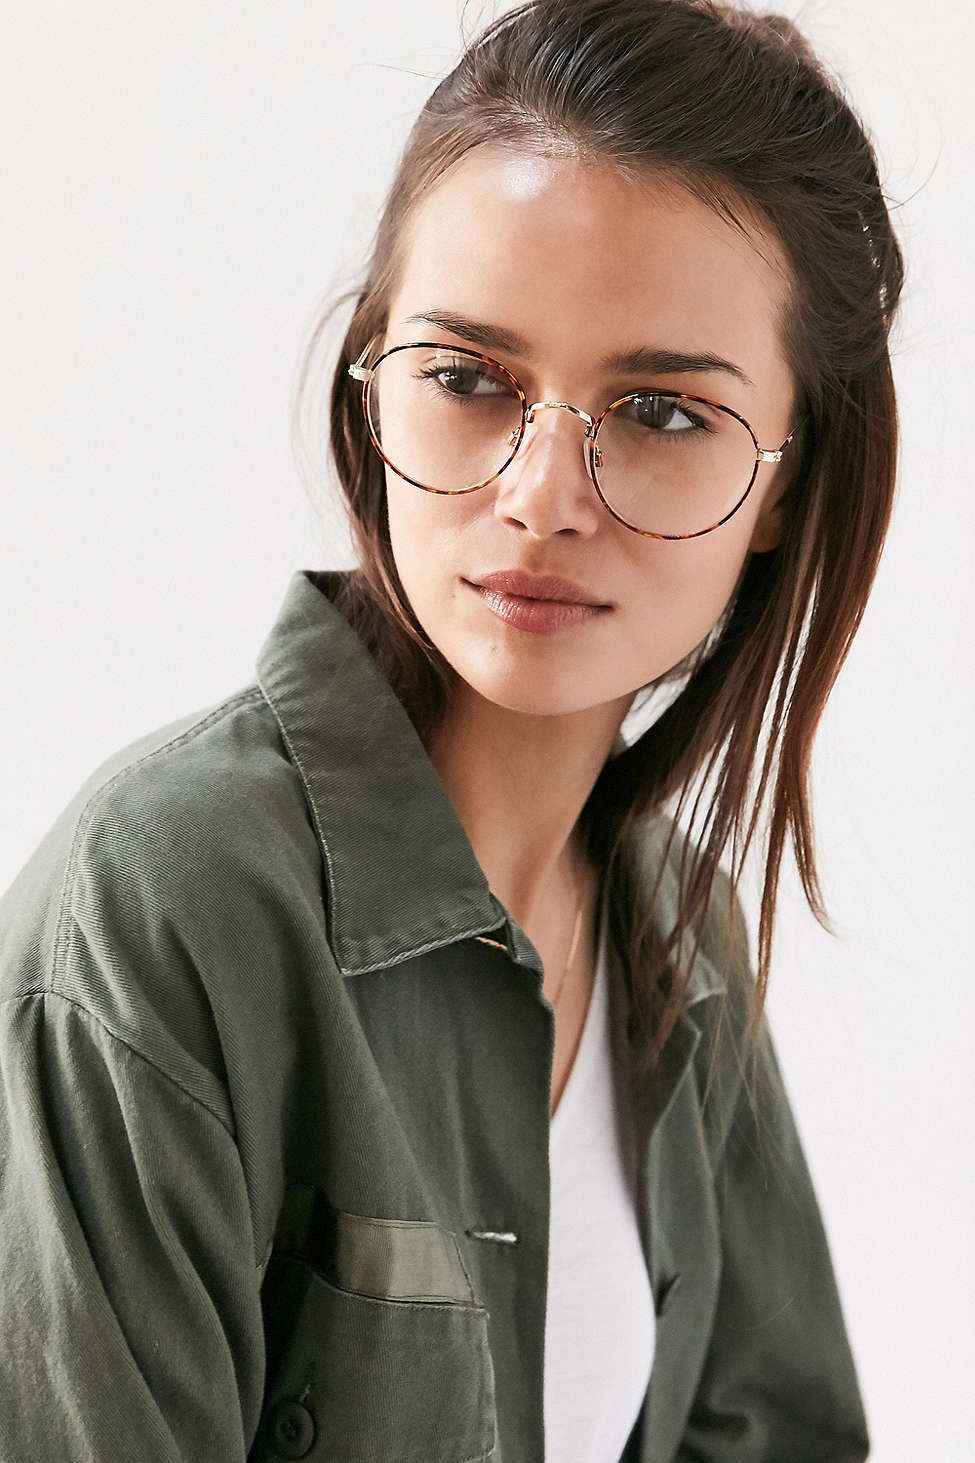 Ses Rondes todress LunettesChoisir Lunettes Kendall01 0OnXkN8wPZ